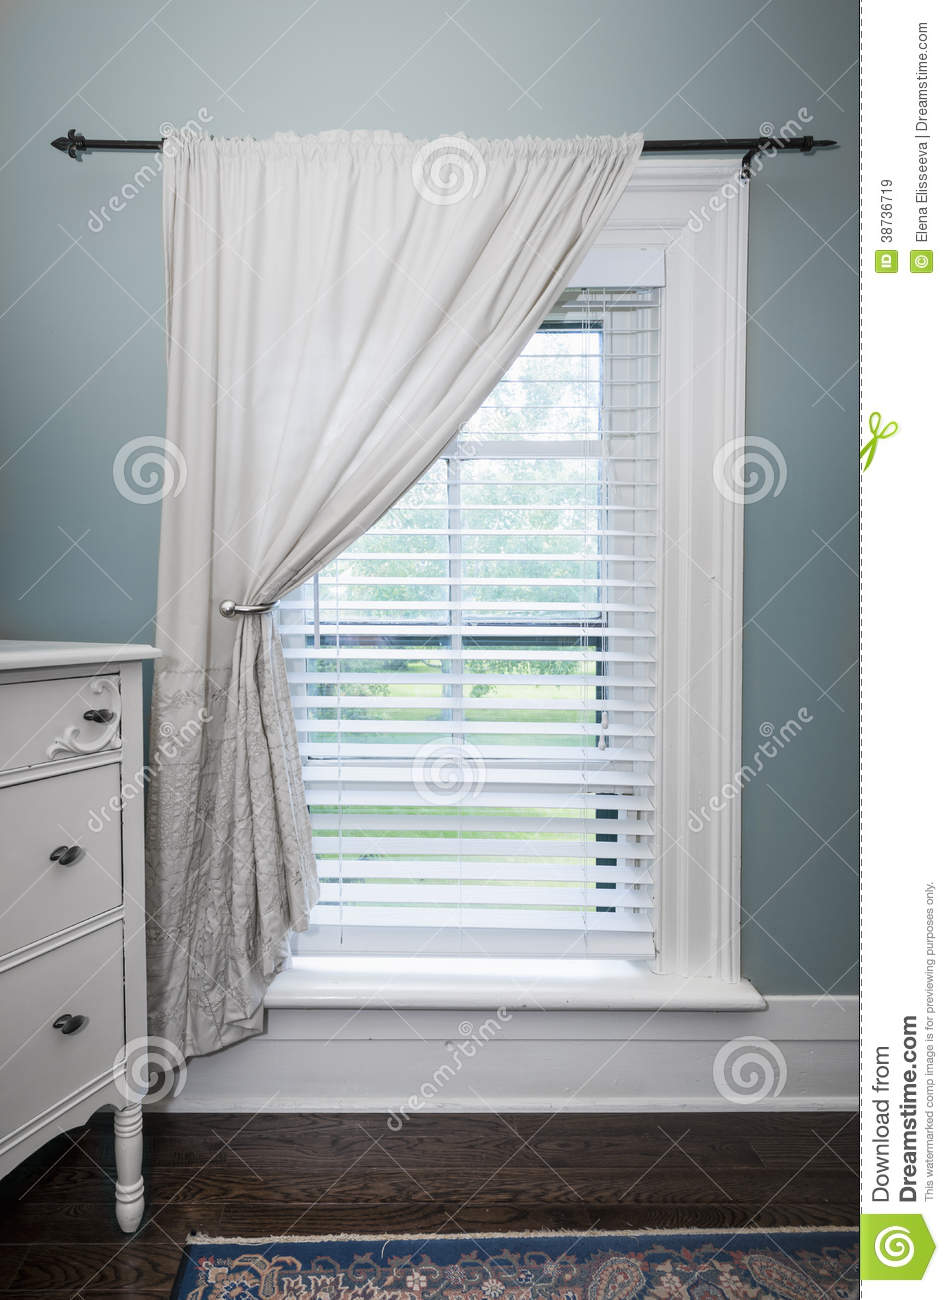 Window With Blinds And Curtain Stock Image Image 38736719